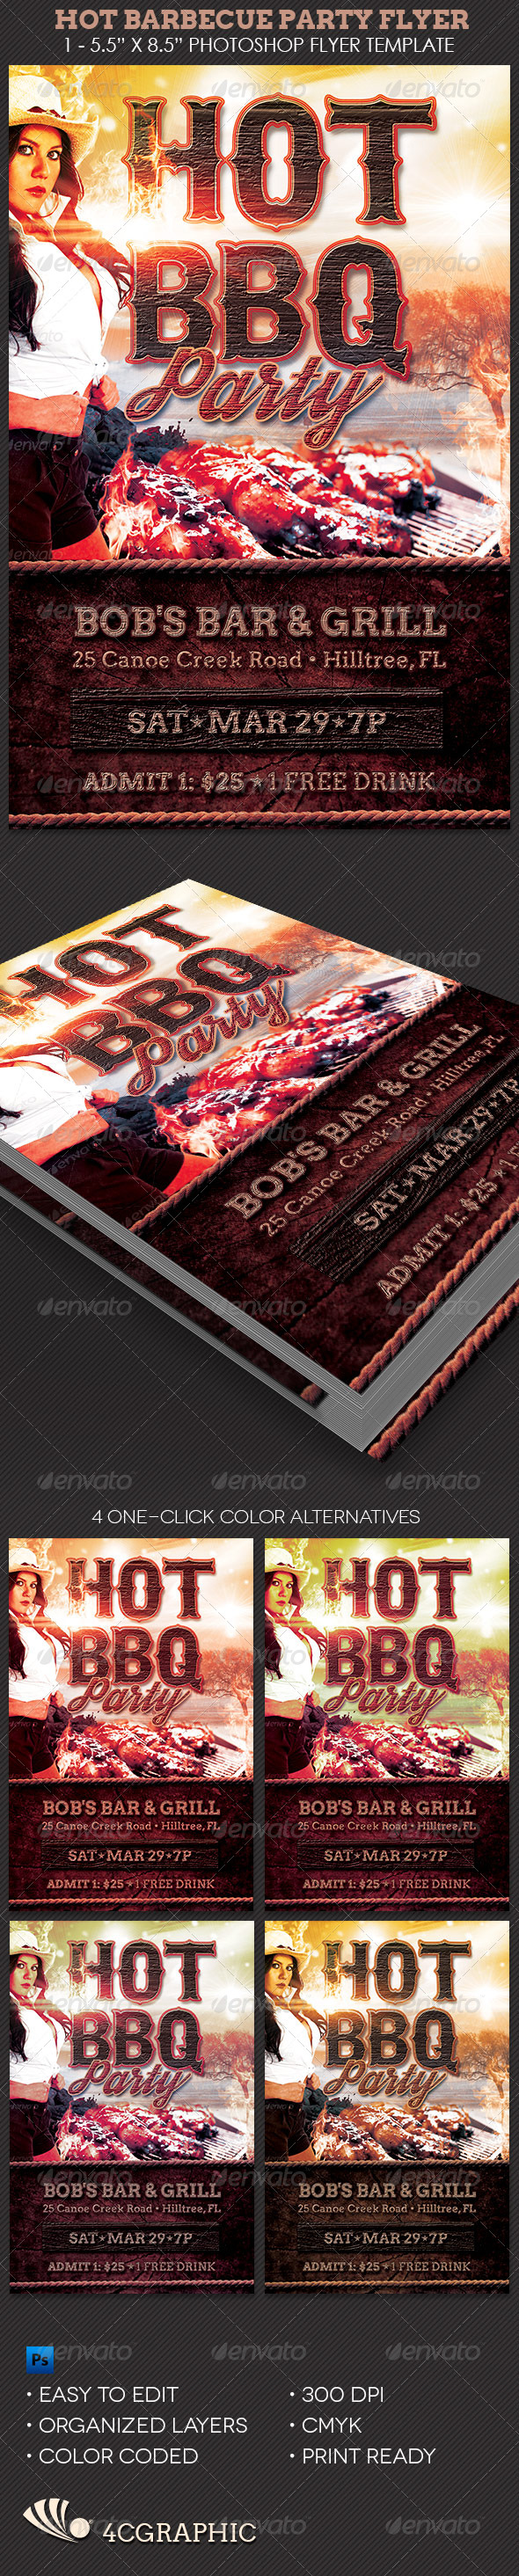 GraphicRiver Hot Barbecue Party Flyer Template 8447122